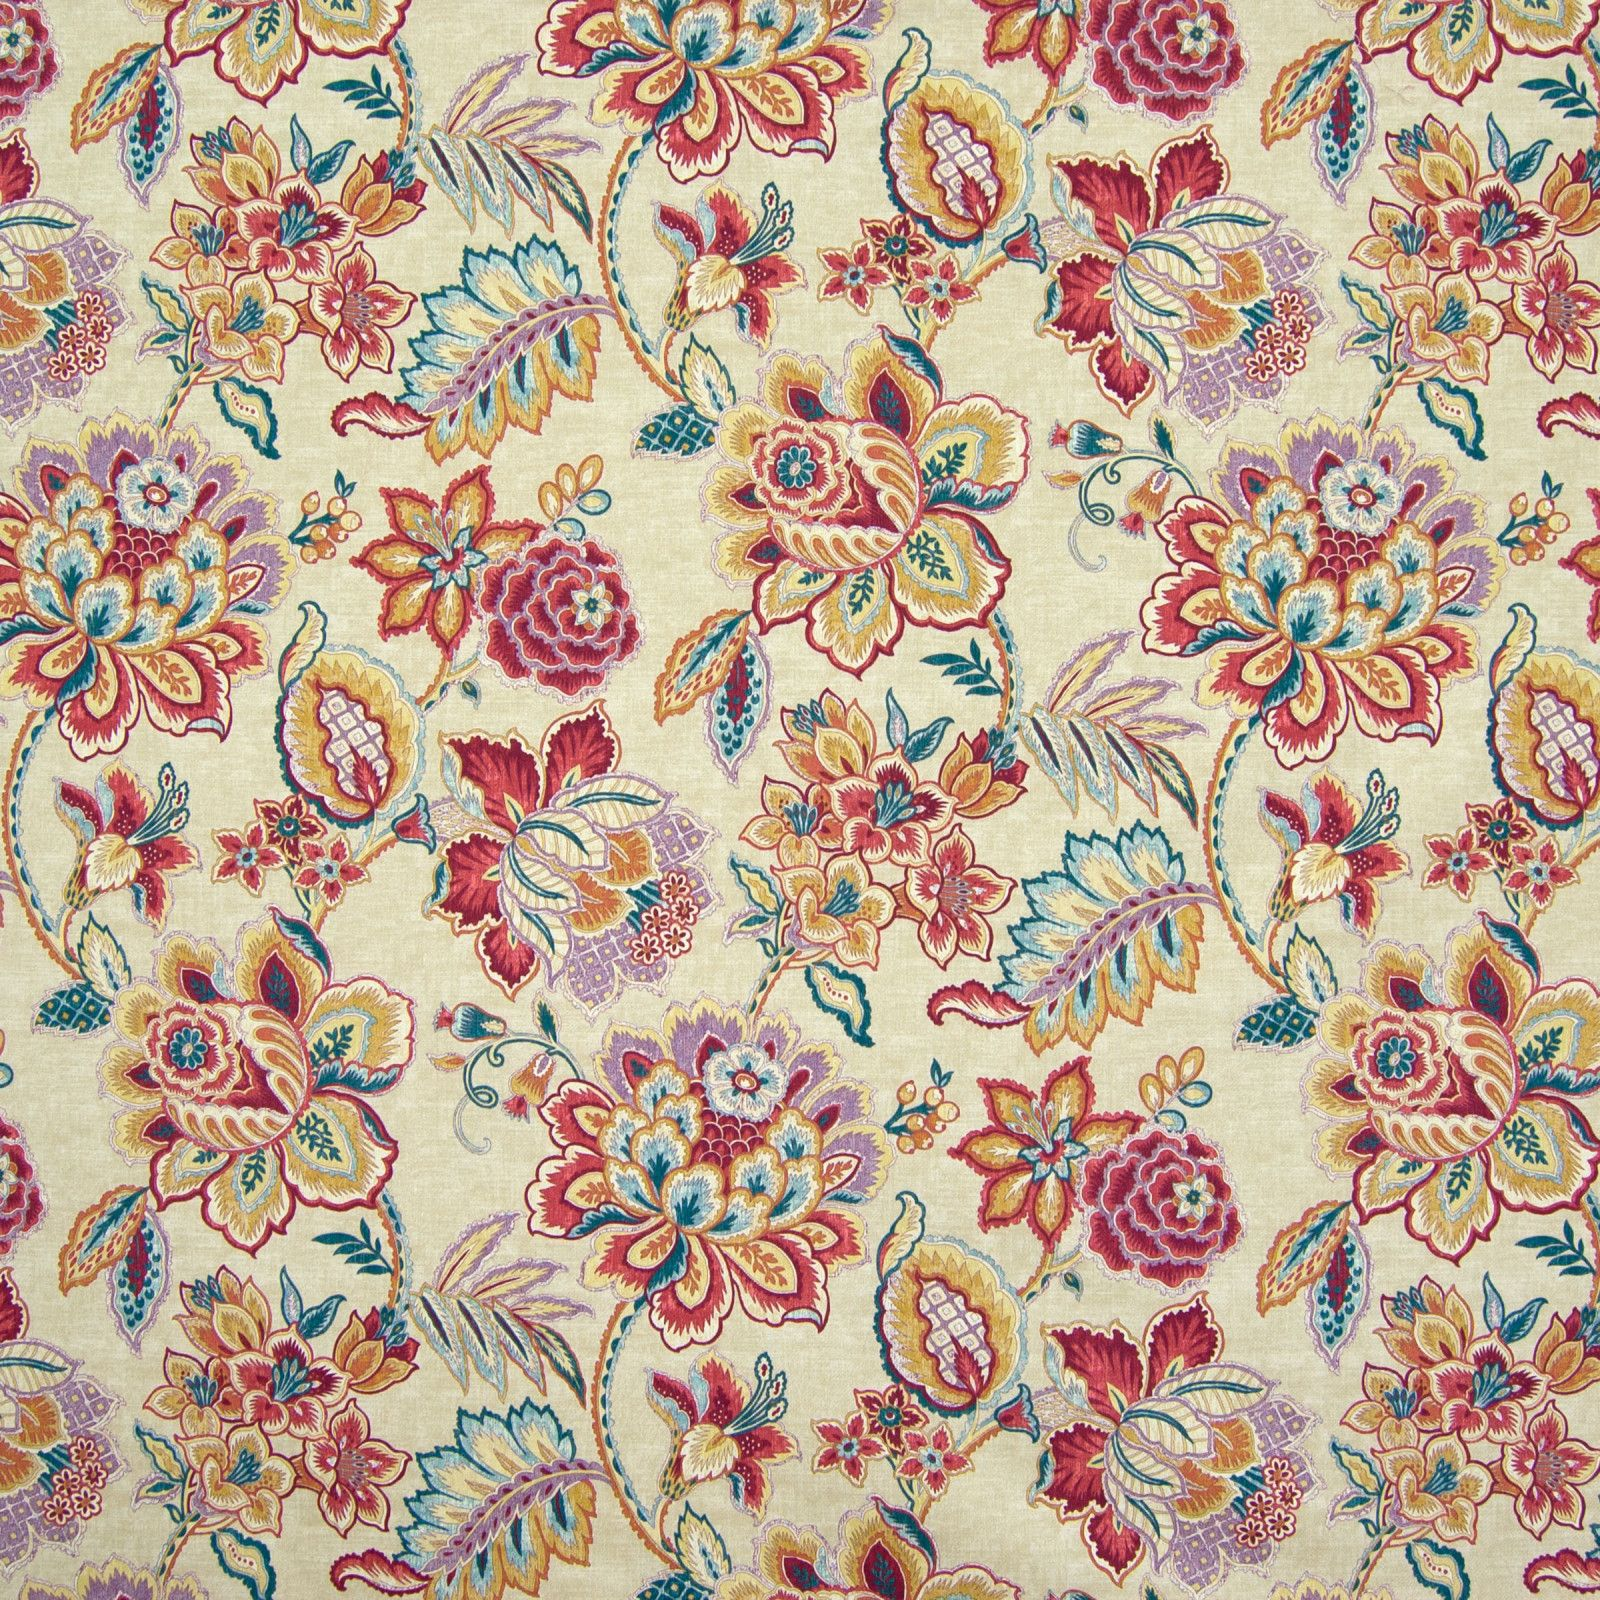 Oriental Floral Design 100/% Cotton Fabric FQ Crafting Quilting Patchwork Blue